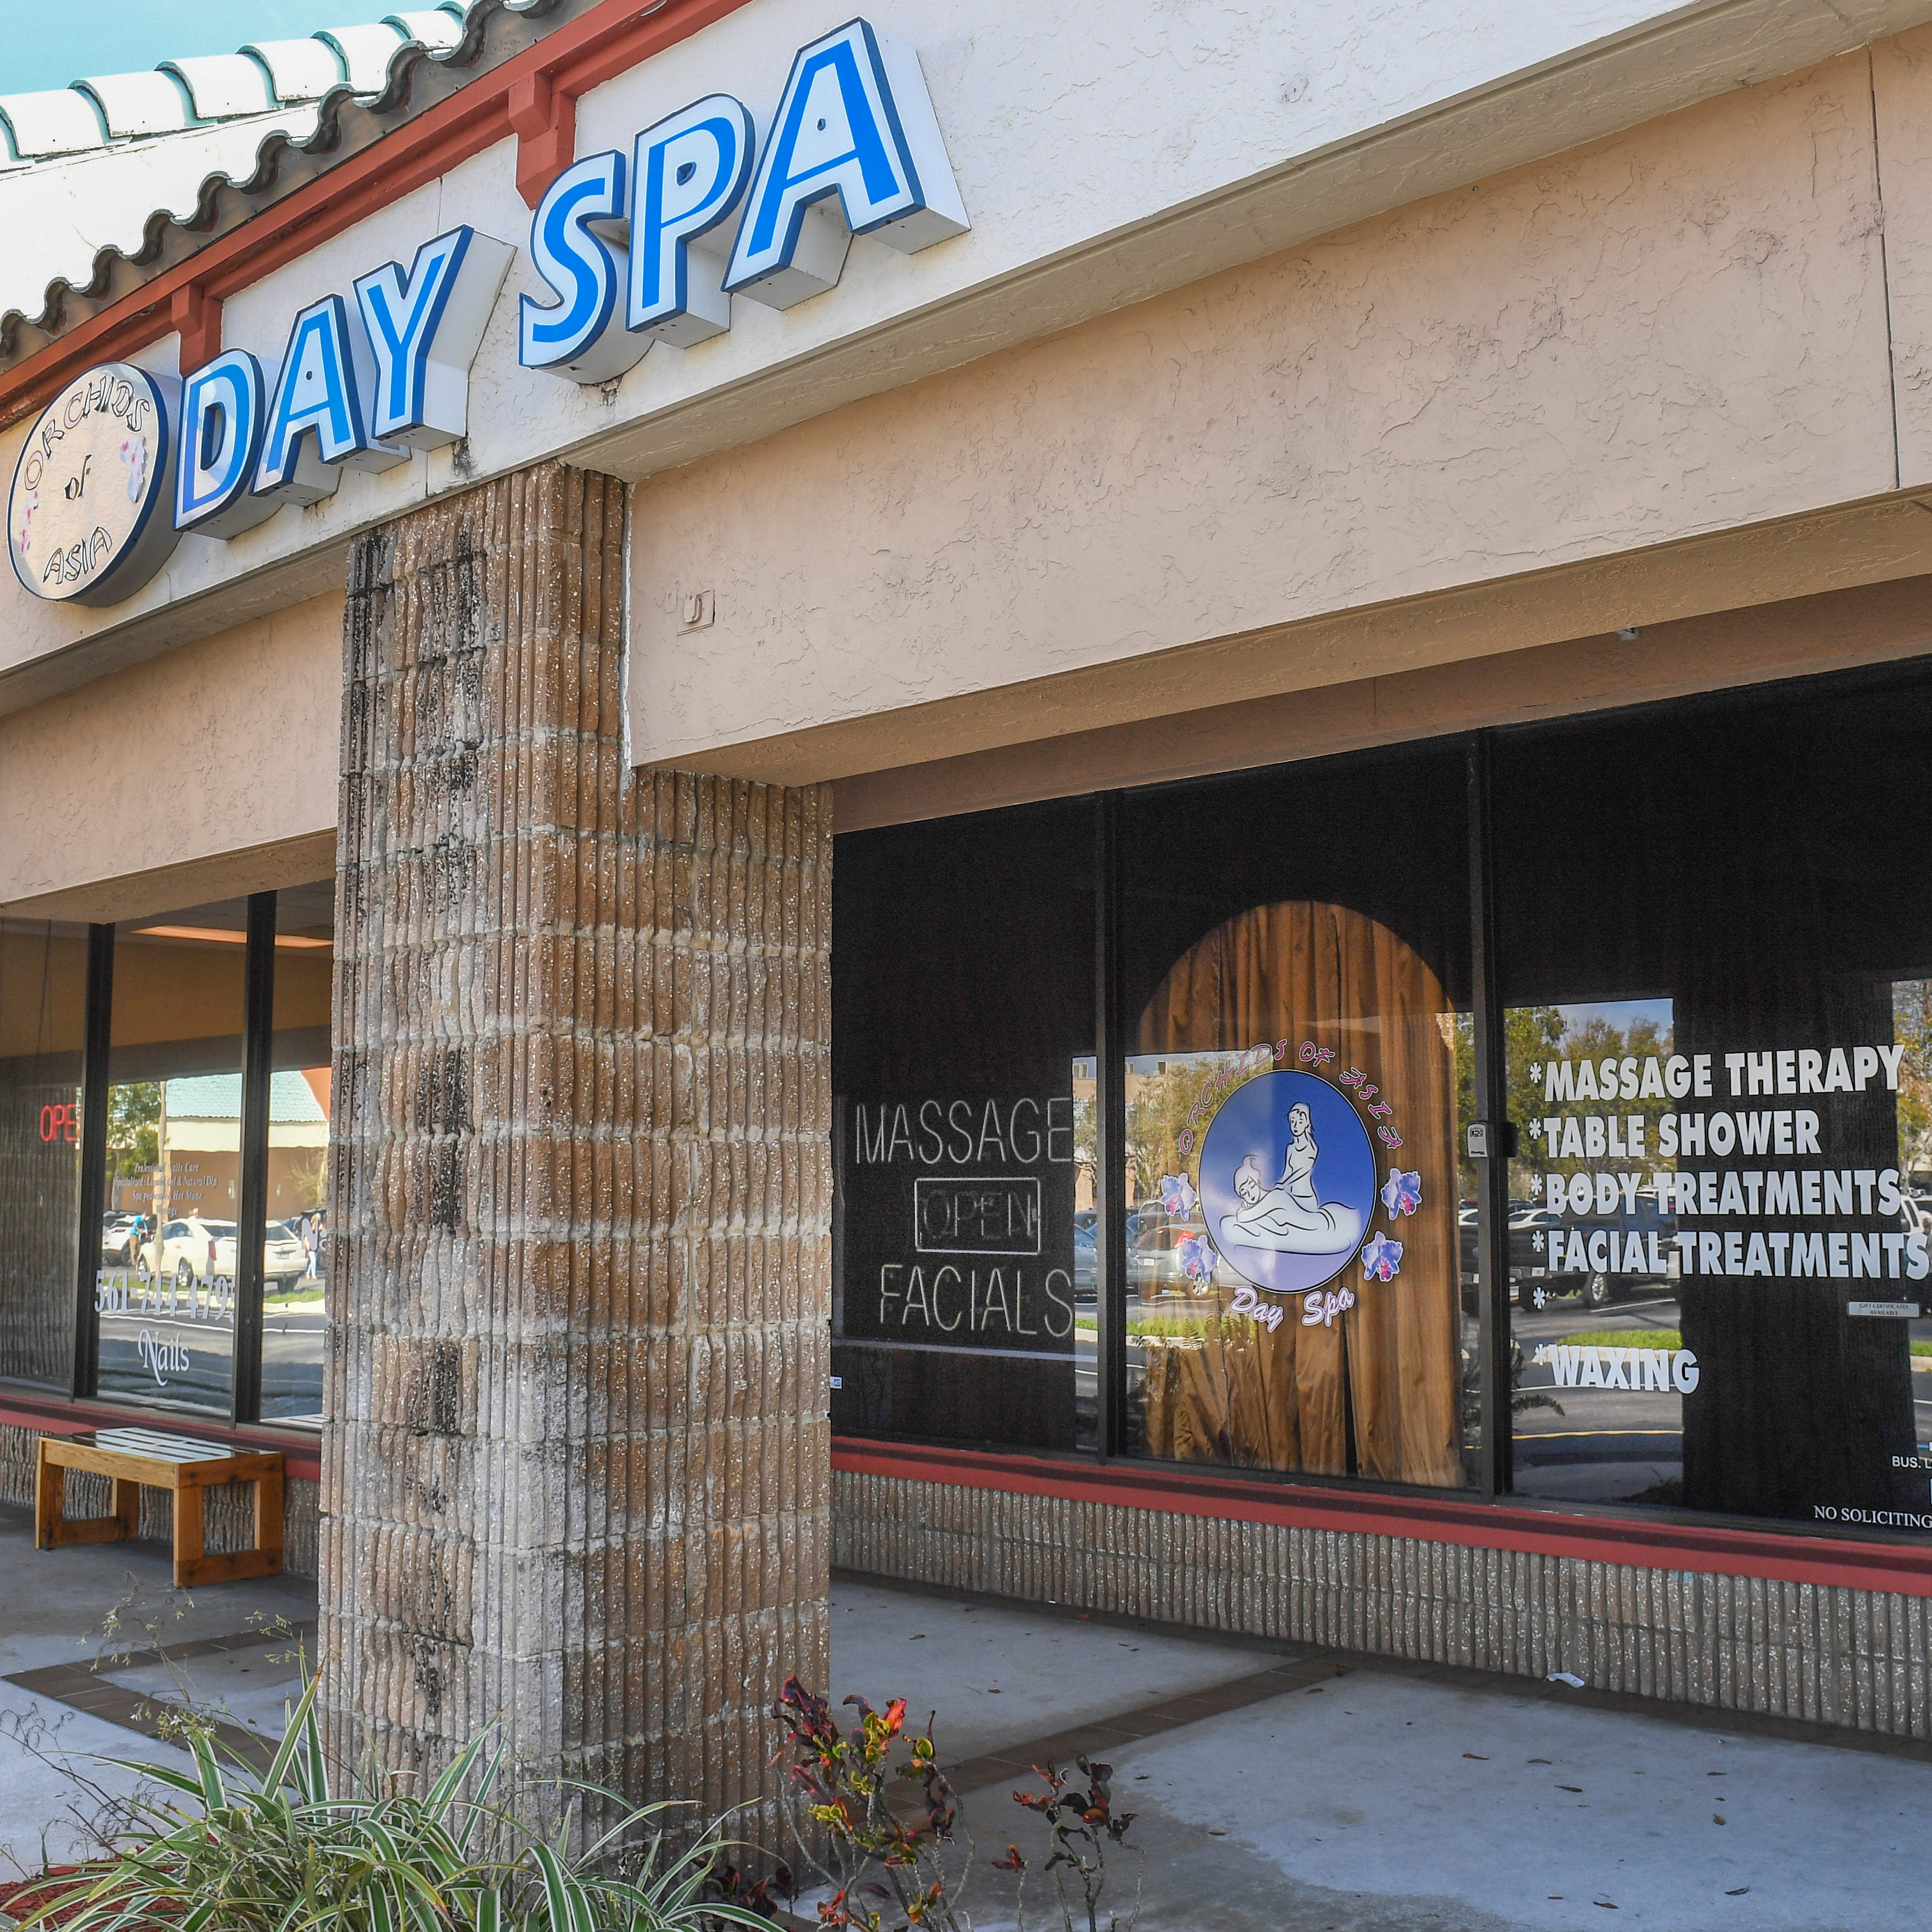 Orchids of Asia Day Spa, 103 S U.S. 1, unit C-2, Jupiter